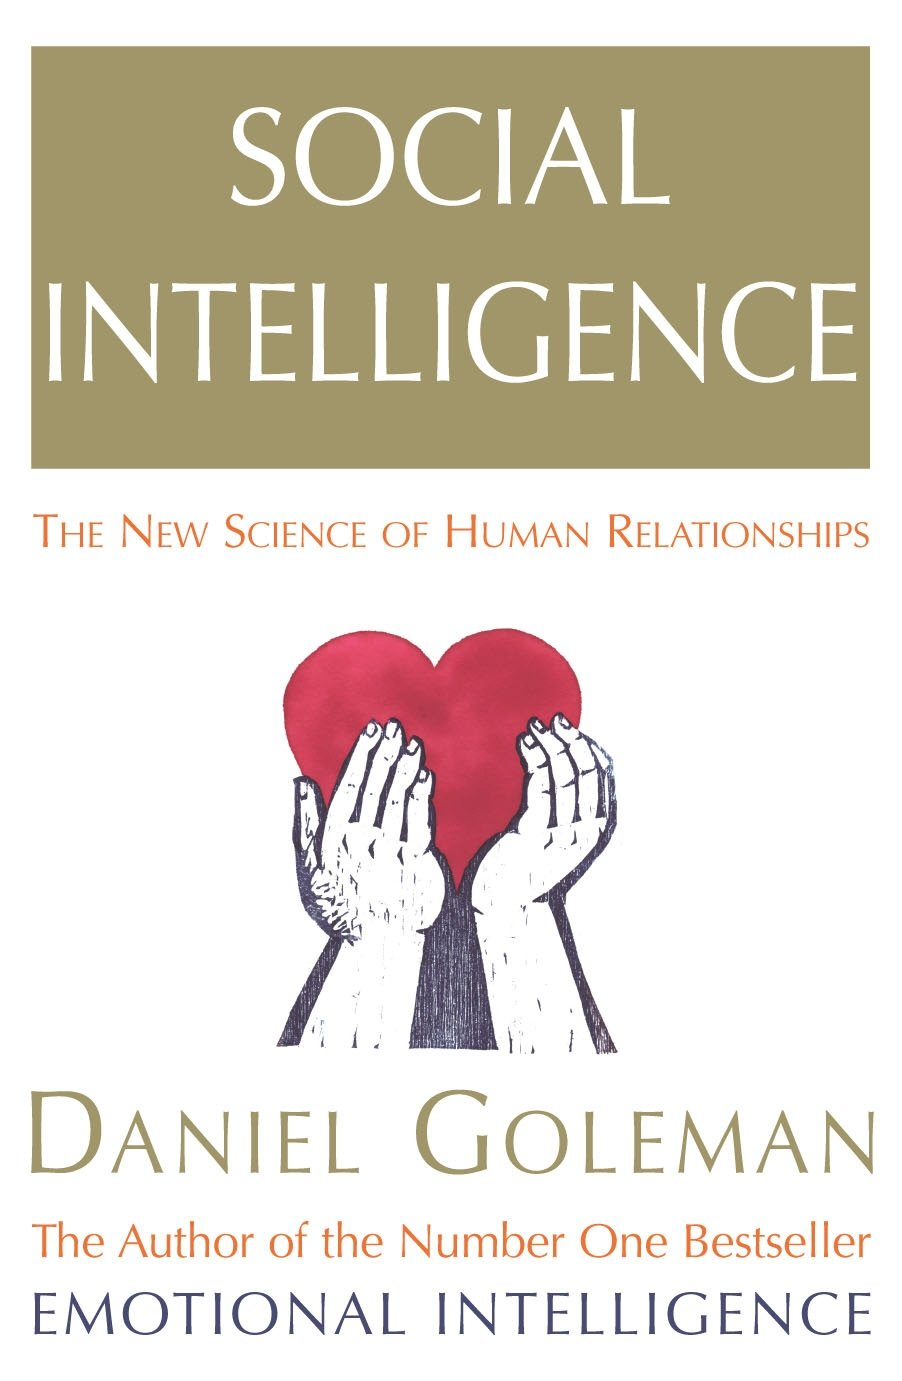 Social Intelligence: The New Science of Human Relationships